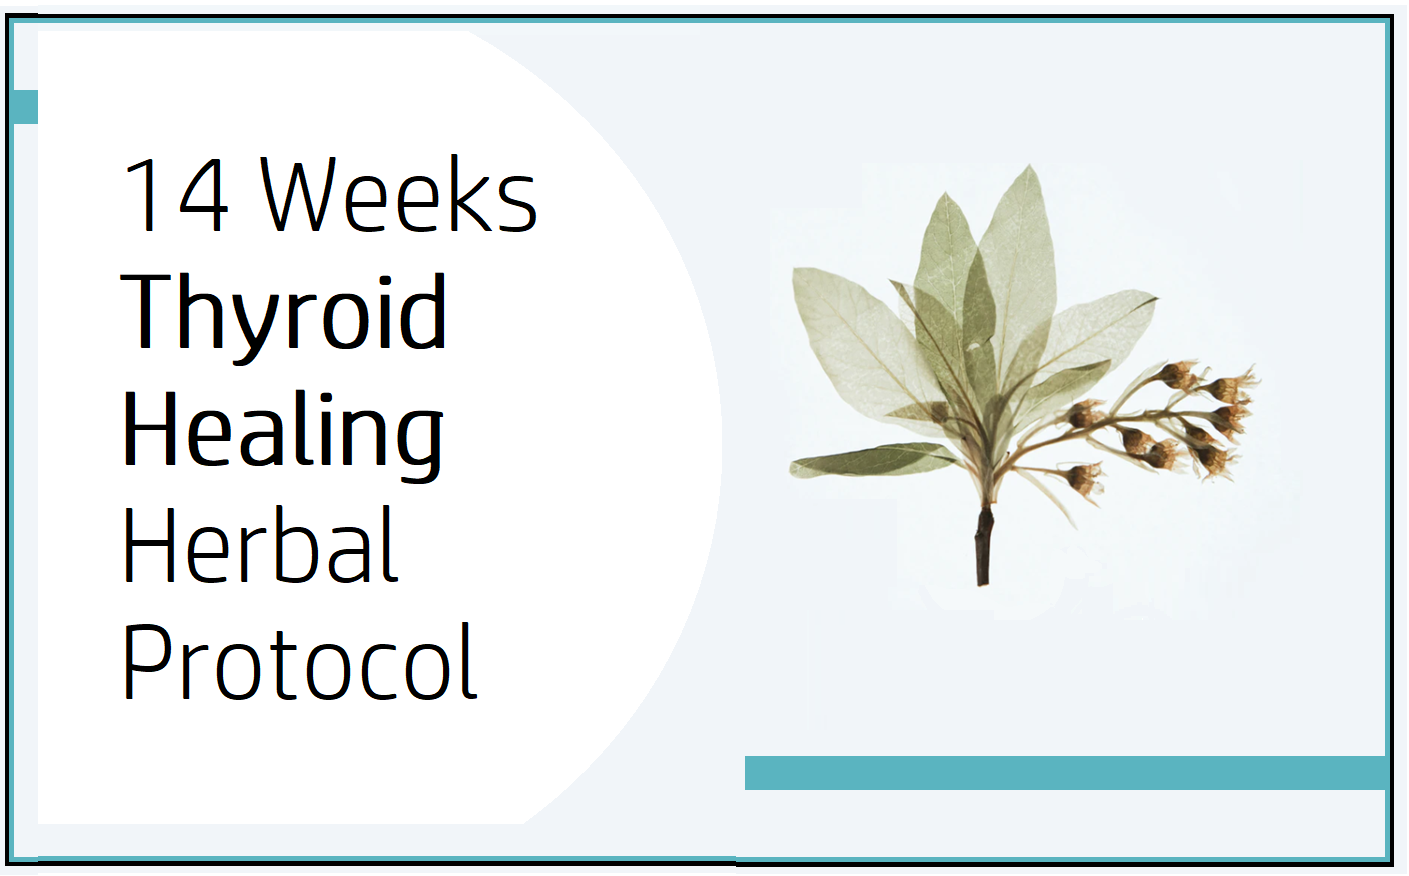 14 WEEKS THYROID HEALING HERBAL PROTOCOL guiding